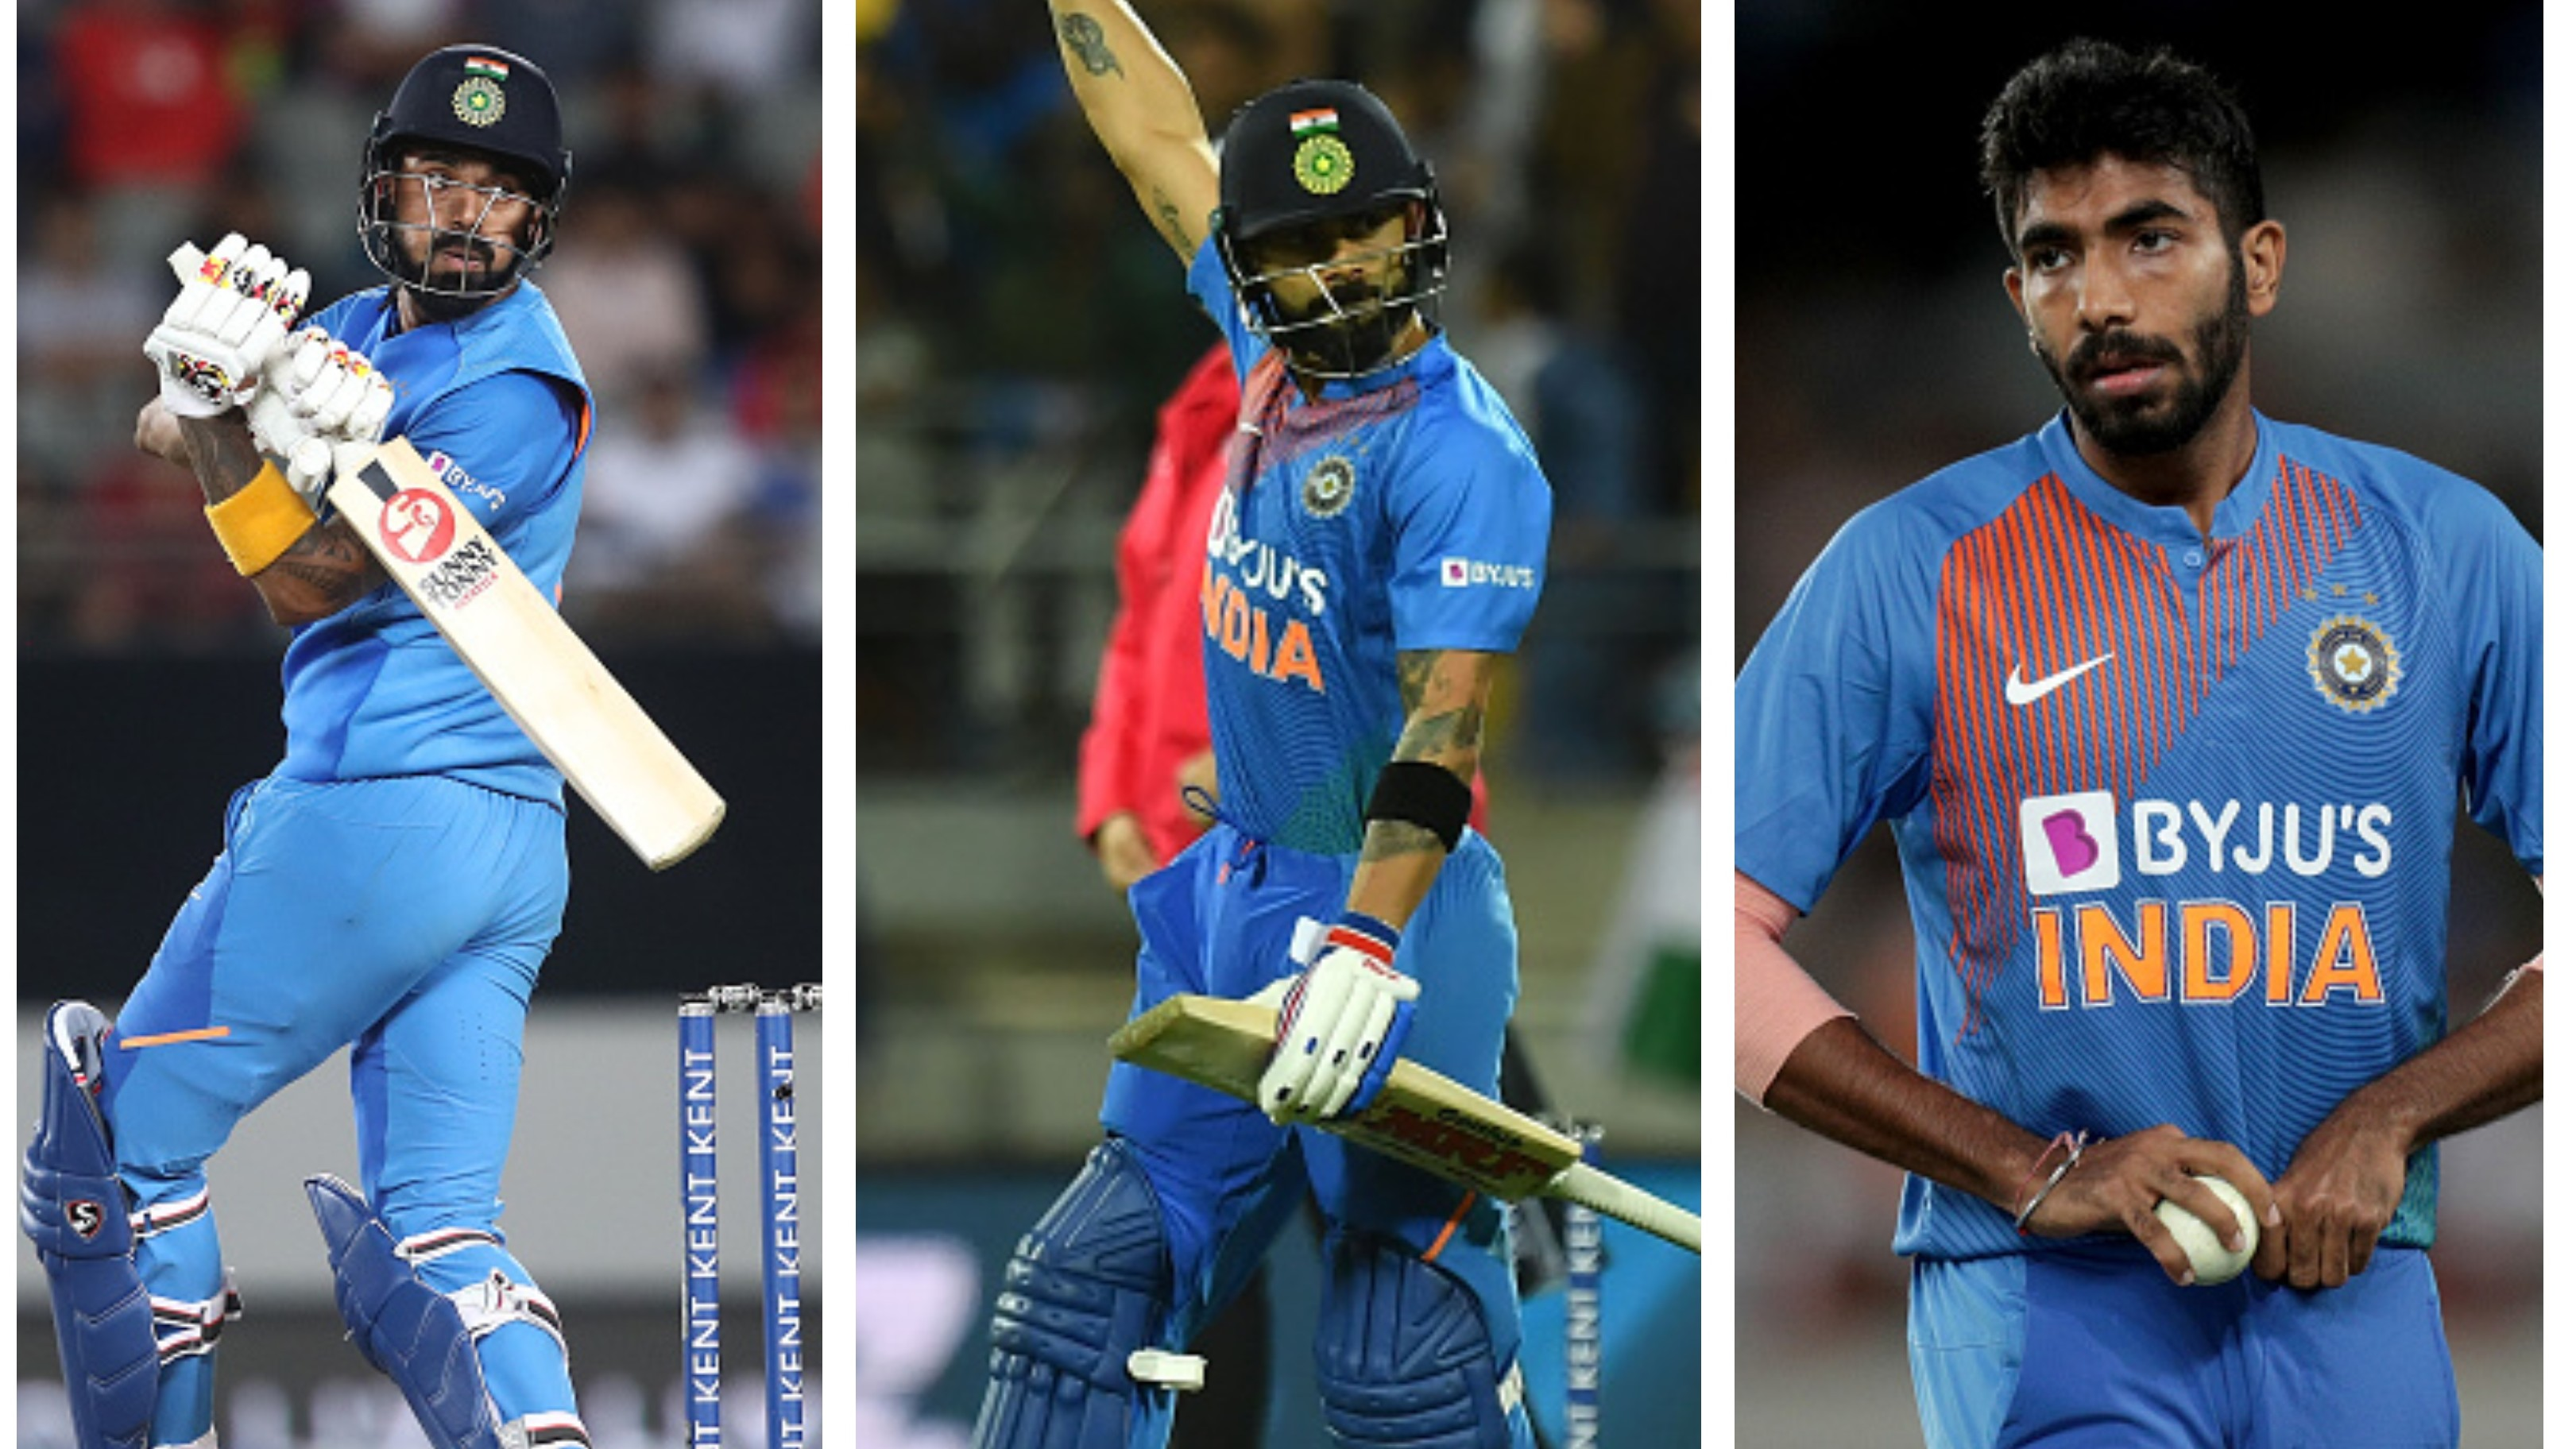 Kohli, Rahul consolidate positions among top 10; Bumrah jumps up to 12th in ICC T20I rankings